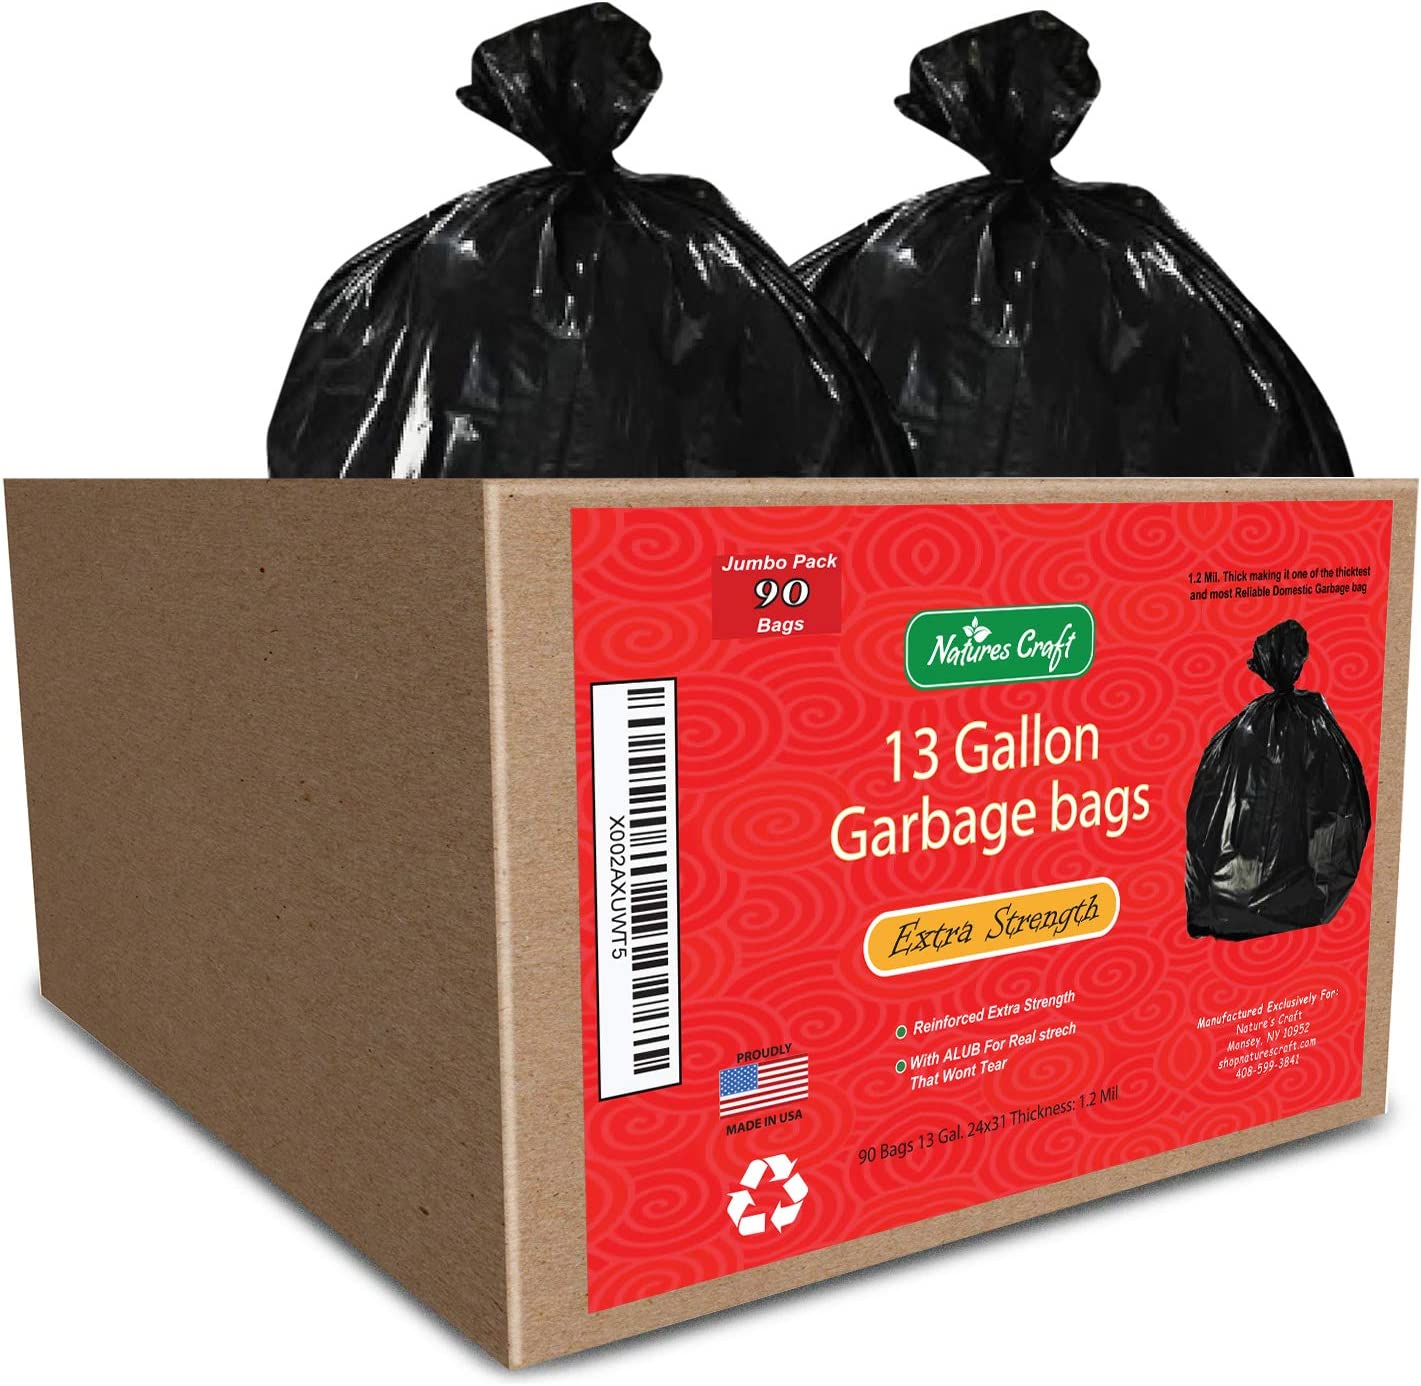 13 gallon Durable Trash Bags - Hefty + Flex - For Kitchen, Cars, Bathroom and Home Use - Rip + Tear Resistant - USA made by Natures Craft